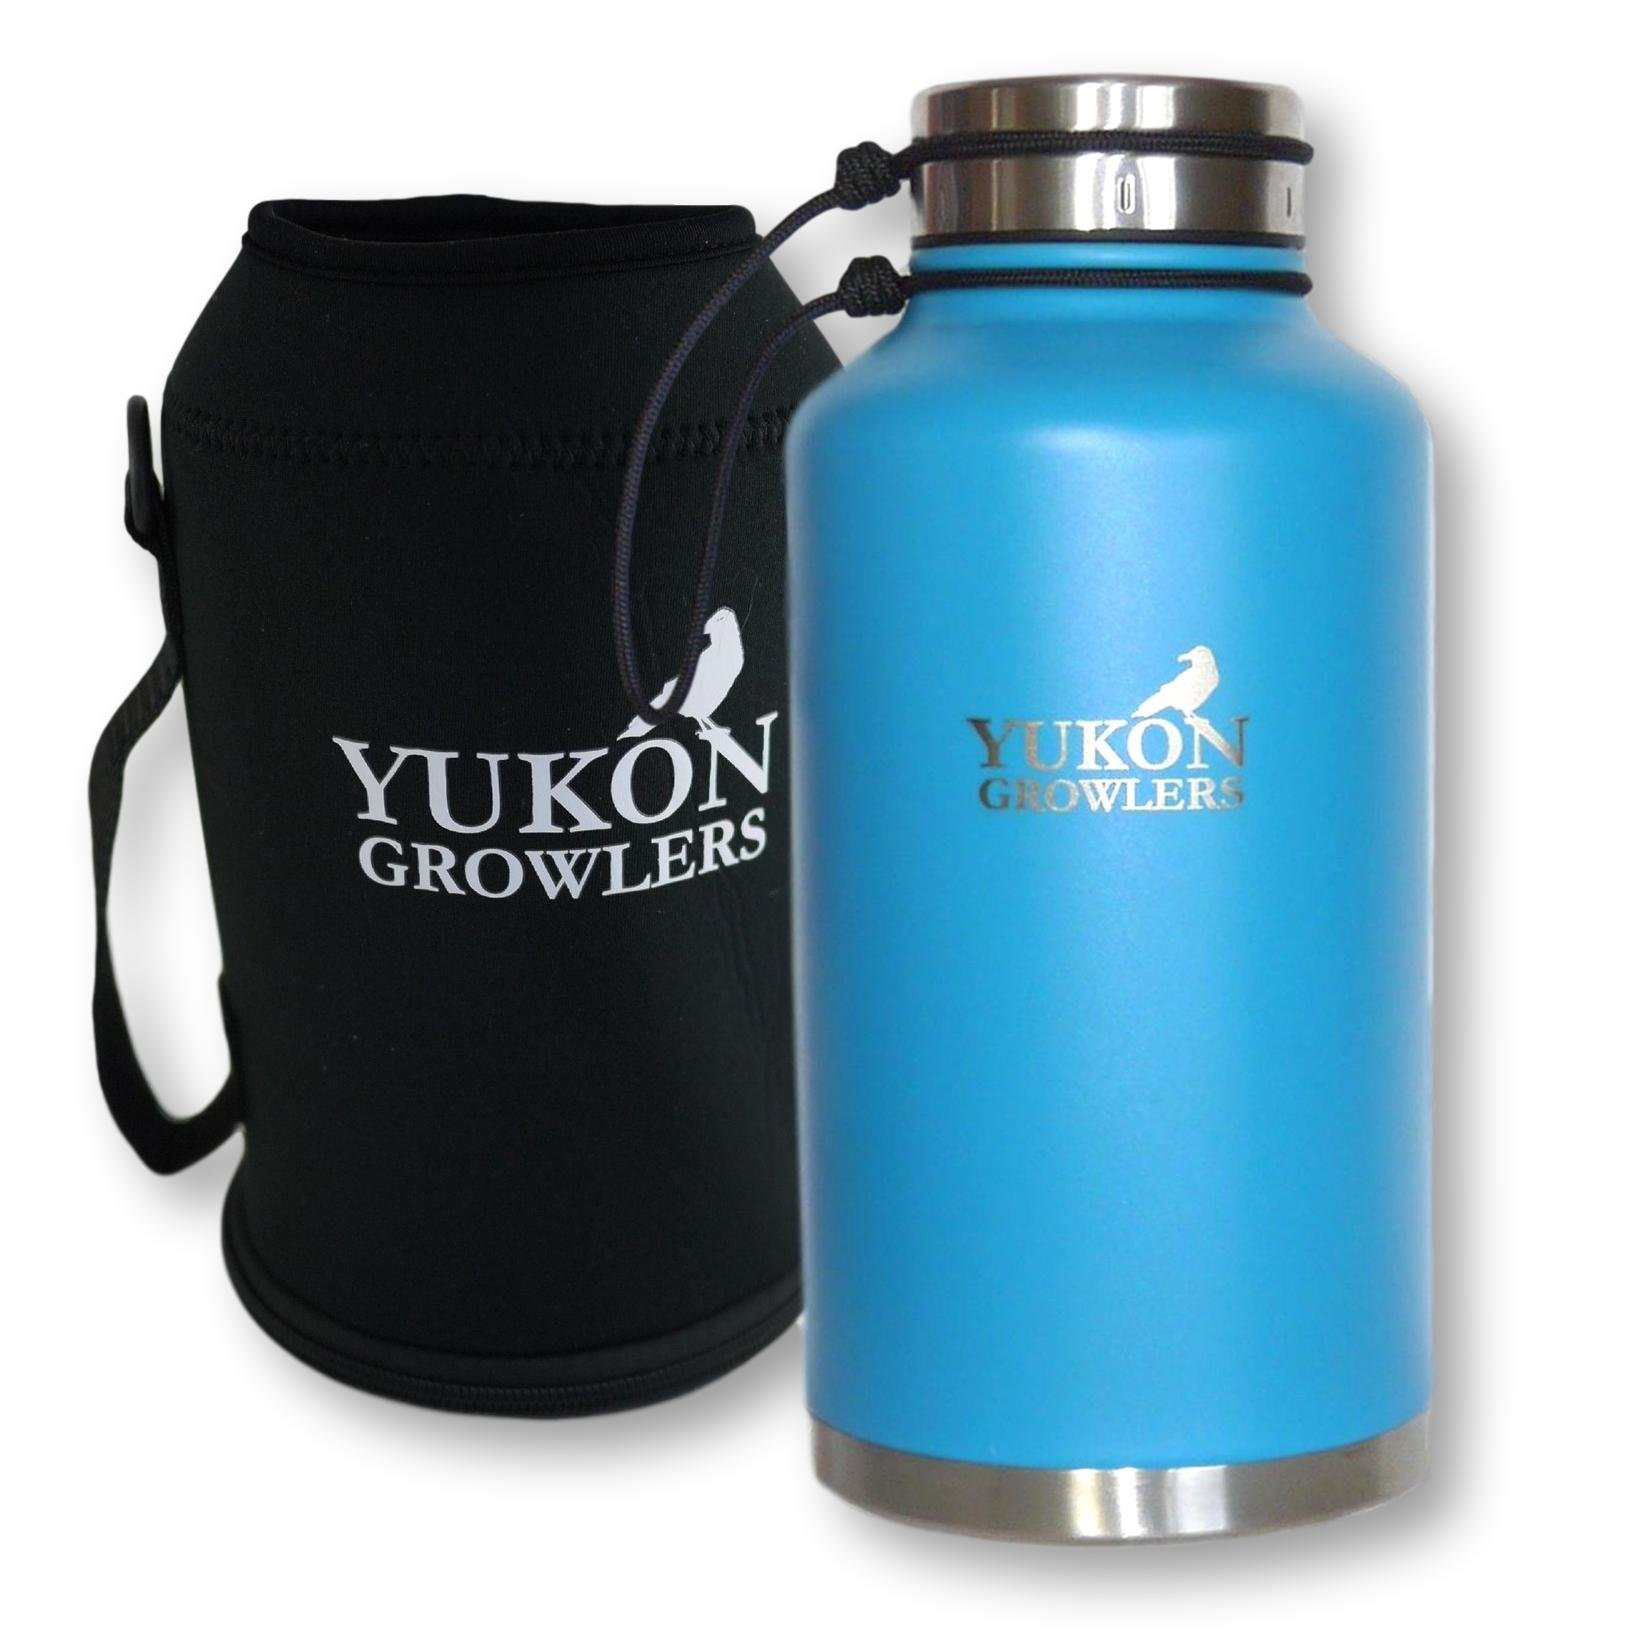 Yukon Growlers Insulated Beer Growler - Keep Your Beer Cold and Carbonated for 24 Hours - Stainless Steel Vacuum Water Bottle with Carrying Case Also Keeps Coffee Hot - Improved Lid - 64 oz